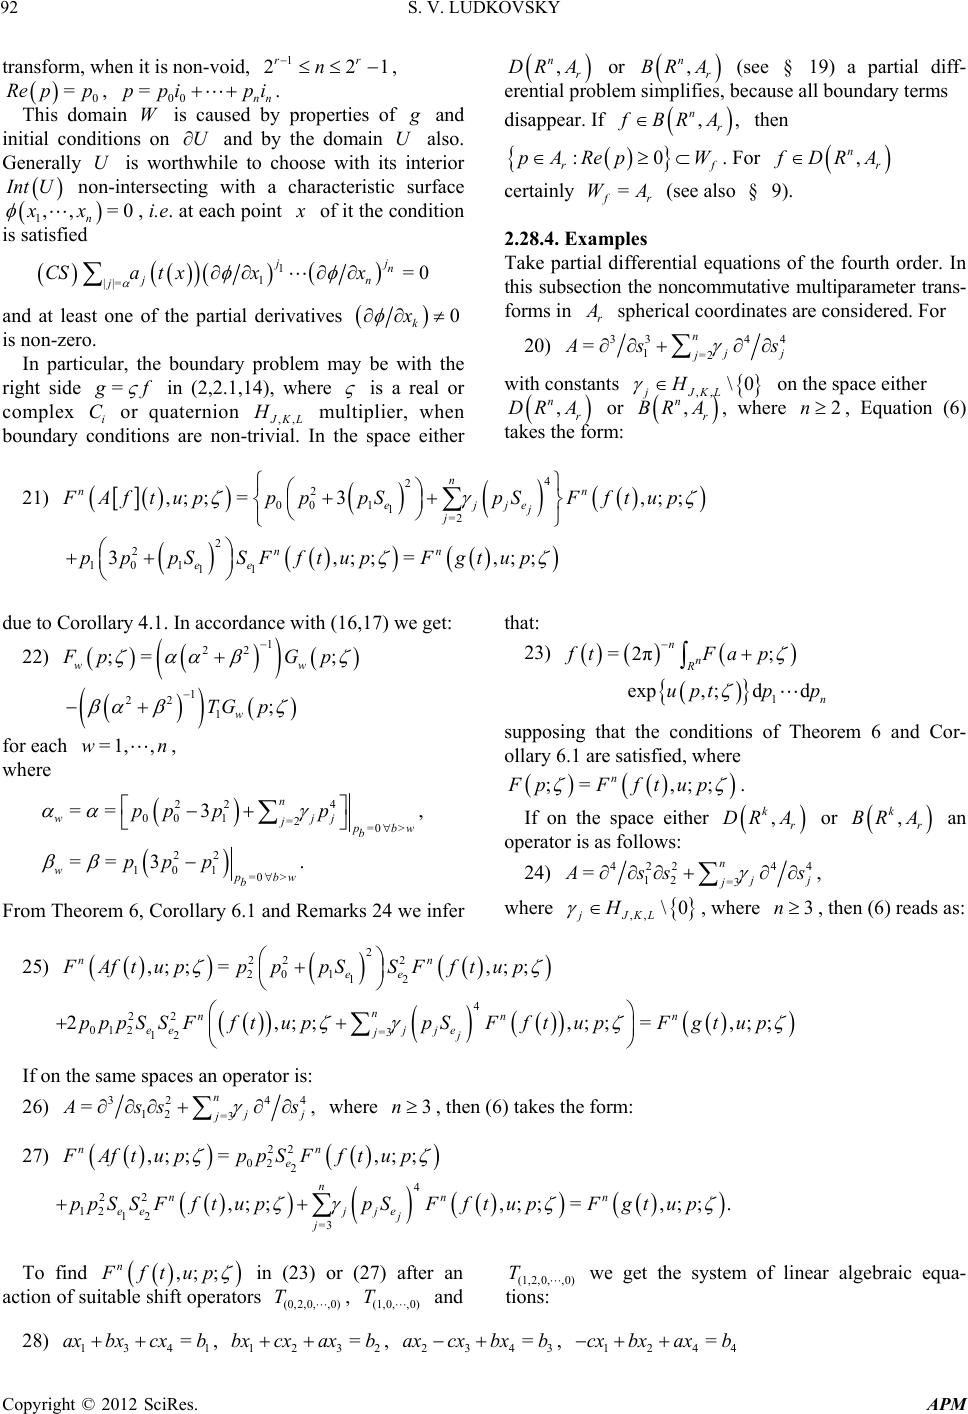 Multidimensional Laplace Transforms Over Quaternions Octonions And